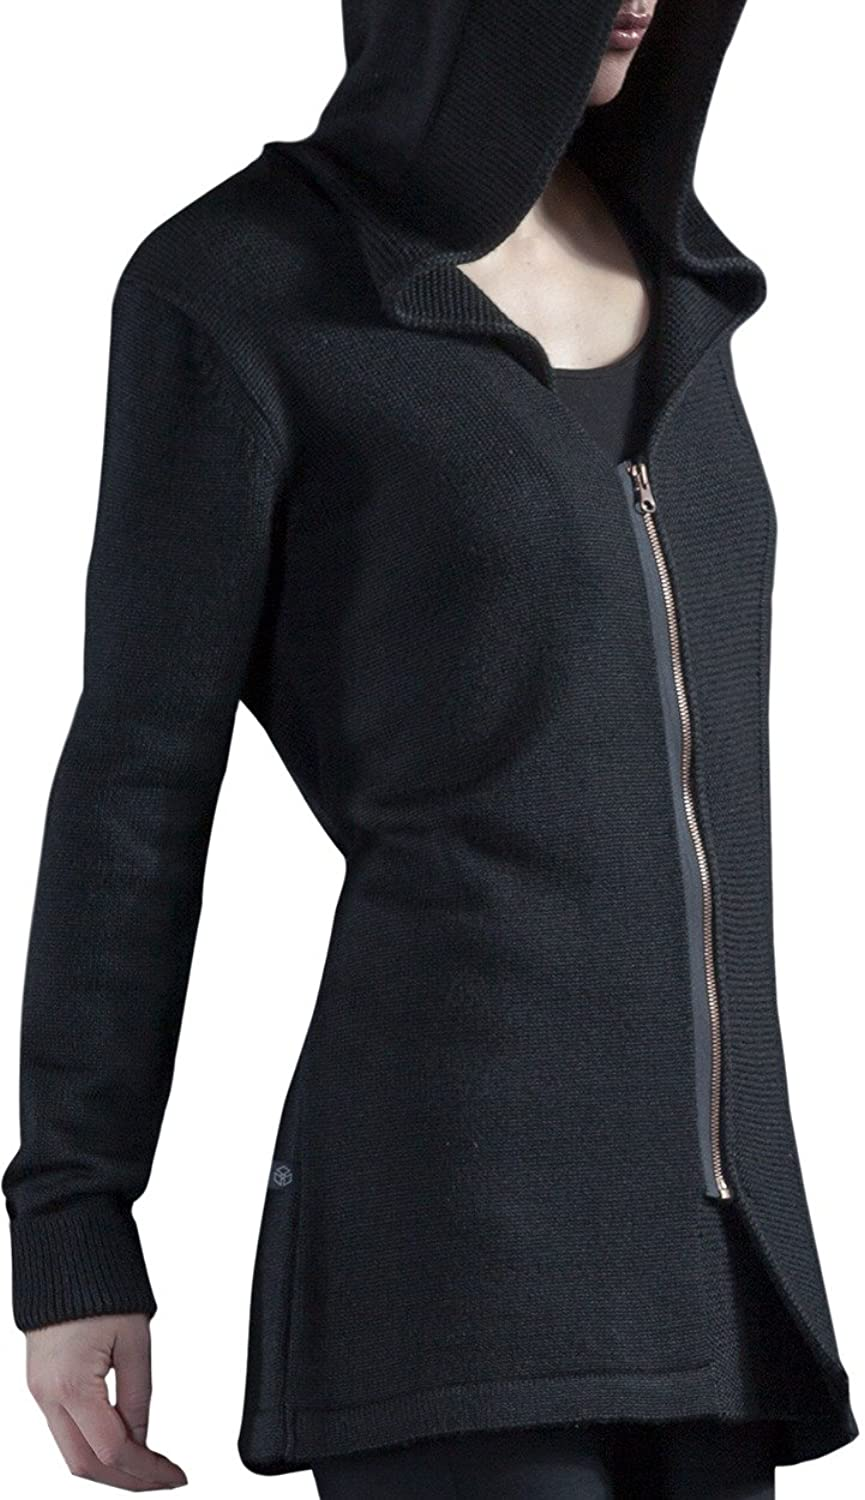 Assassin's Creed Women Fairfax Black Knit Cardigan Sweater - http://deluxeadultcostumes.com/womens-assassins-creed-costumes/